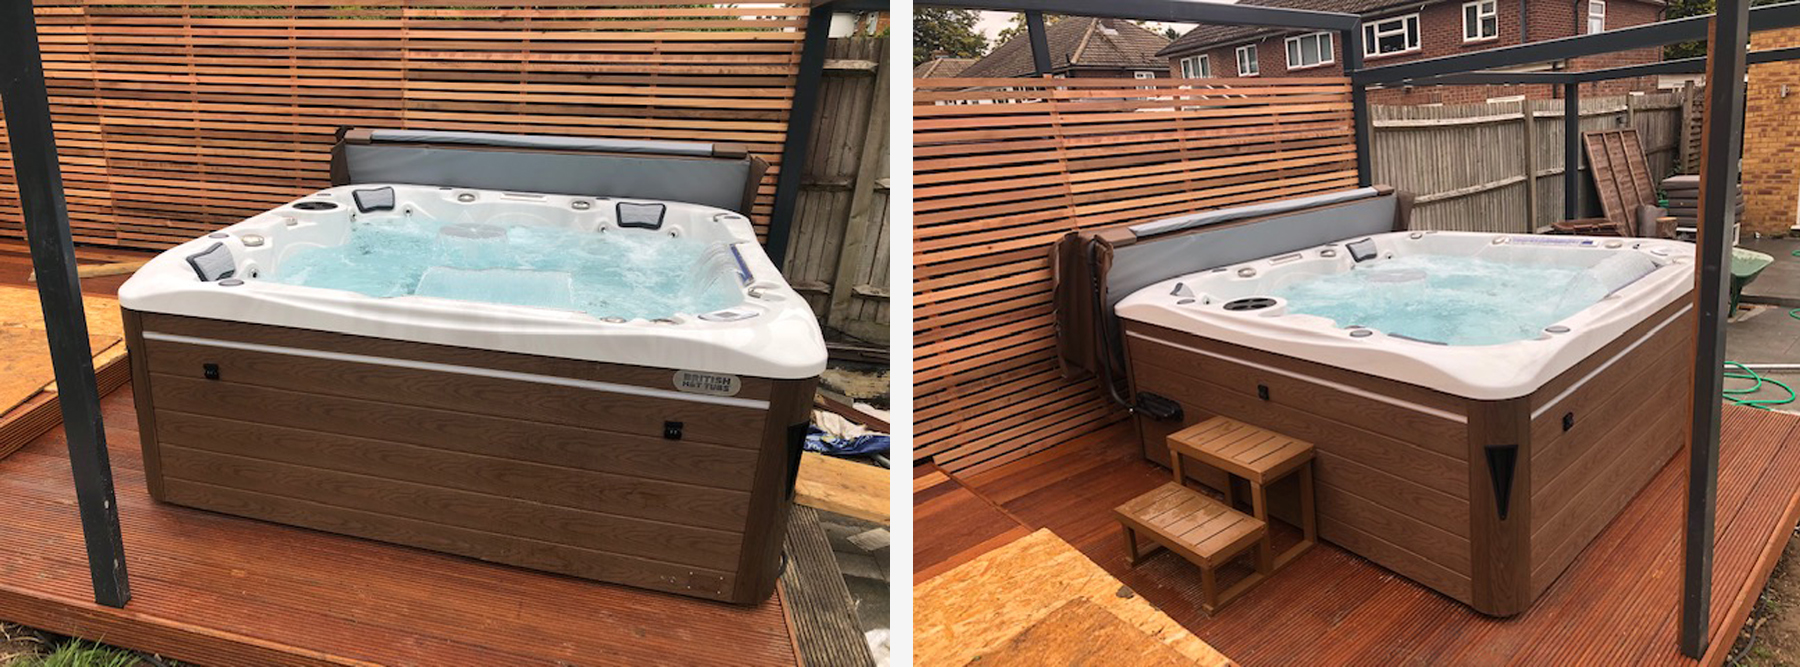 british hot tubs union installation